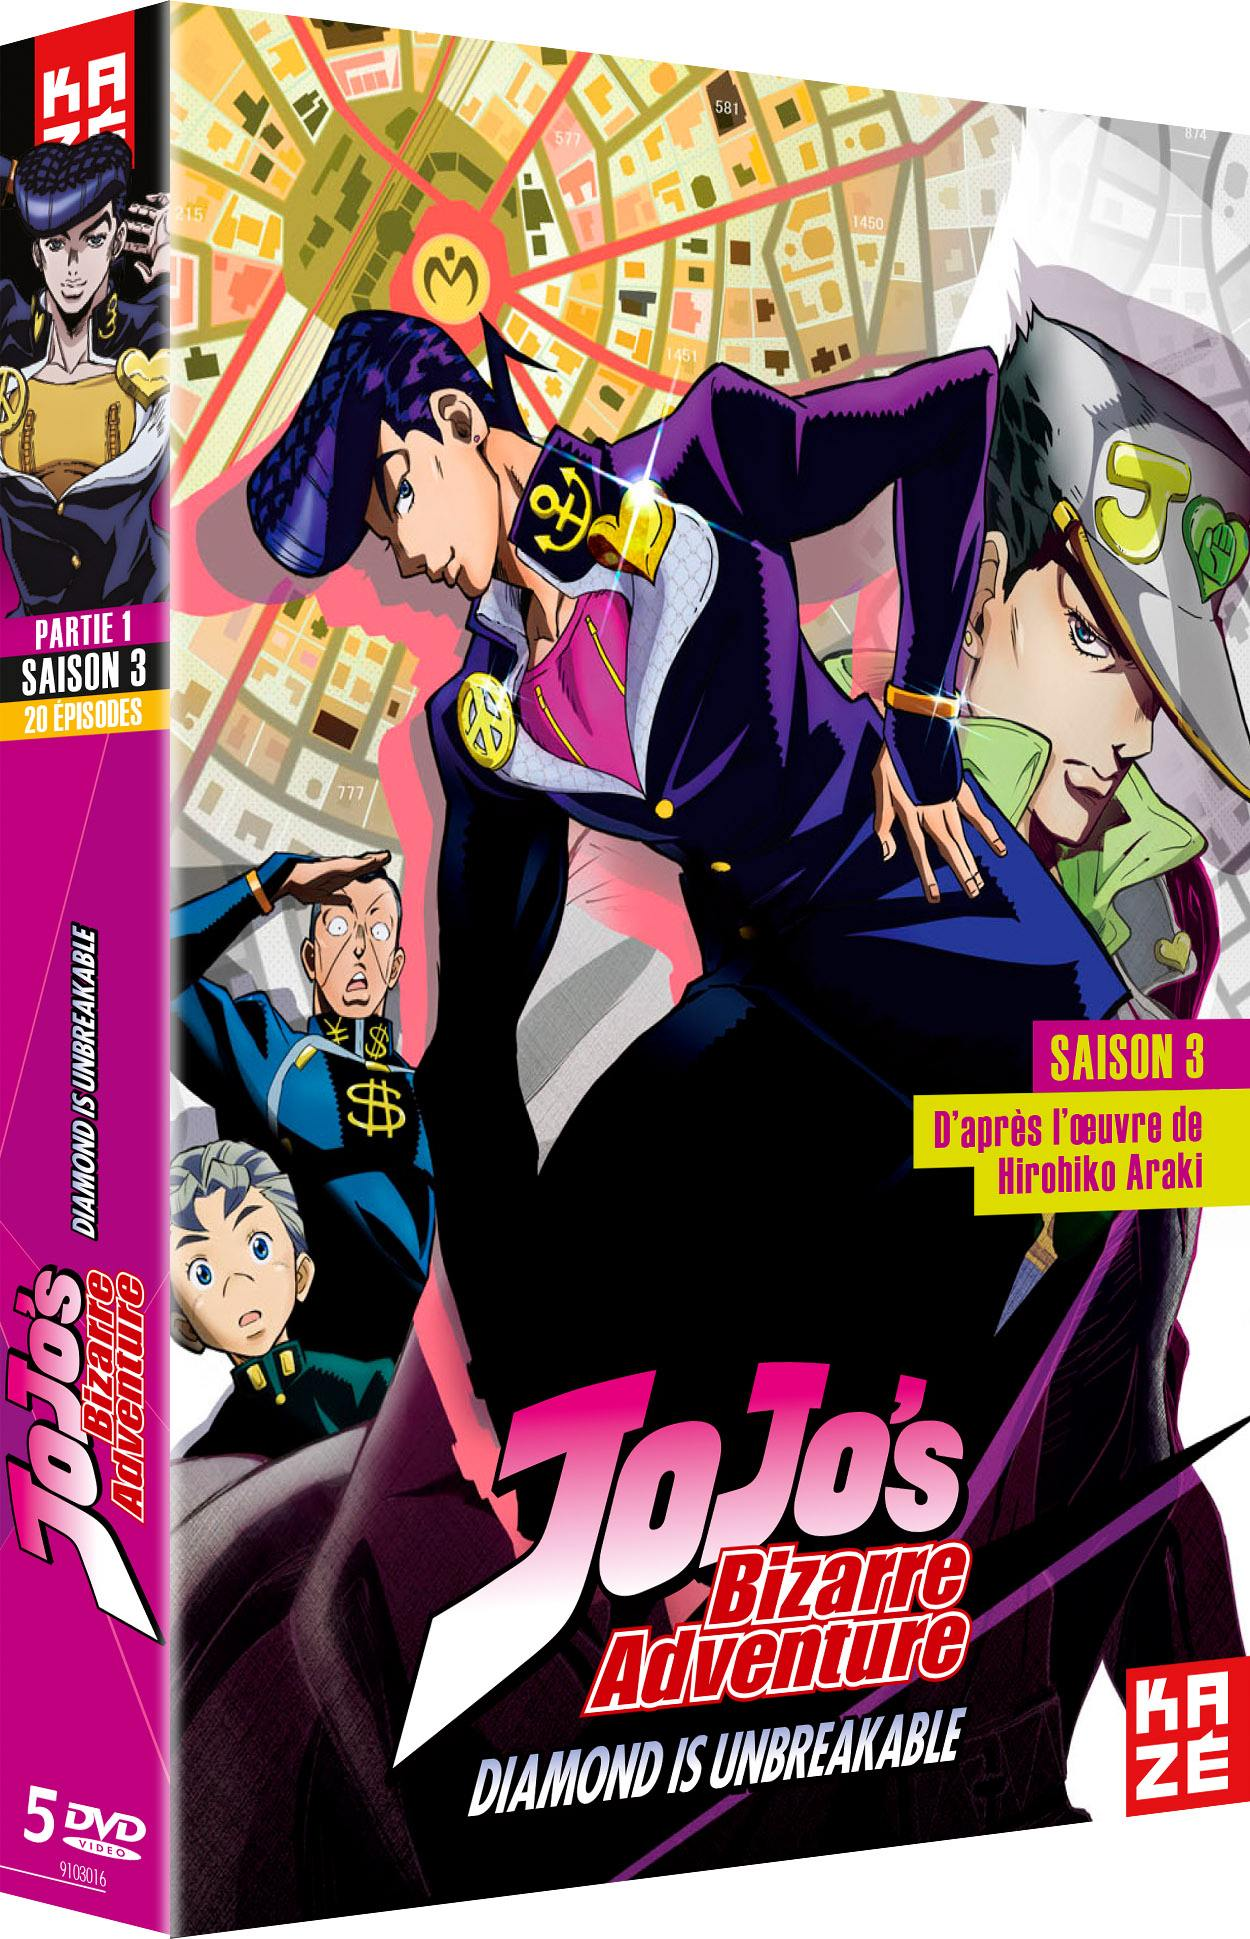 Jojo's bizarre adventure - s3 - diamond is unbreakable - partie 1 sur 2 - 5dvd